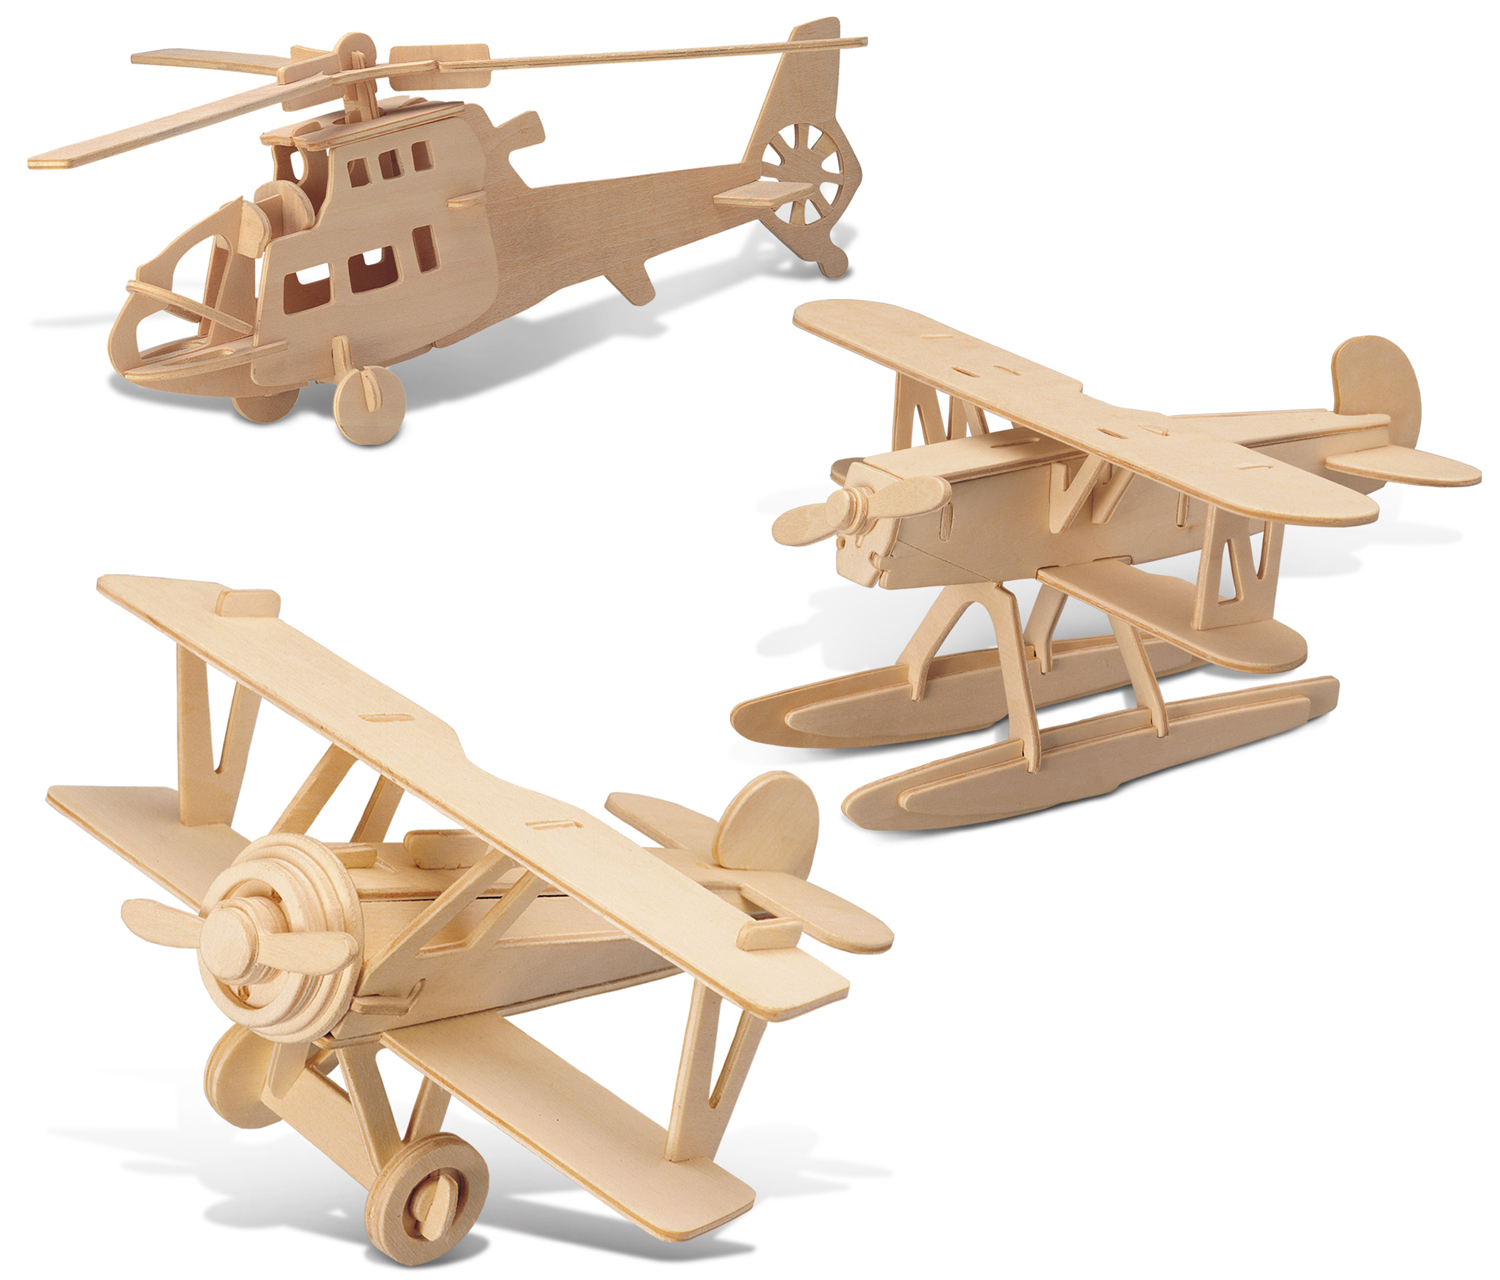 Puzzled Water Plane, Chopper and Nieuport 17 Wooden 3D Pu...